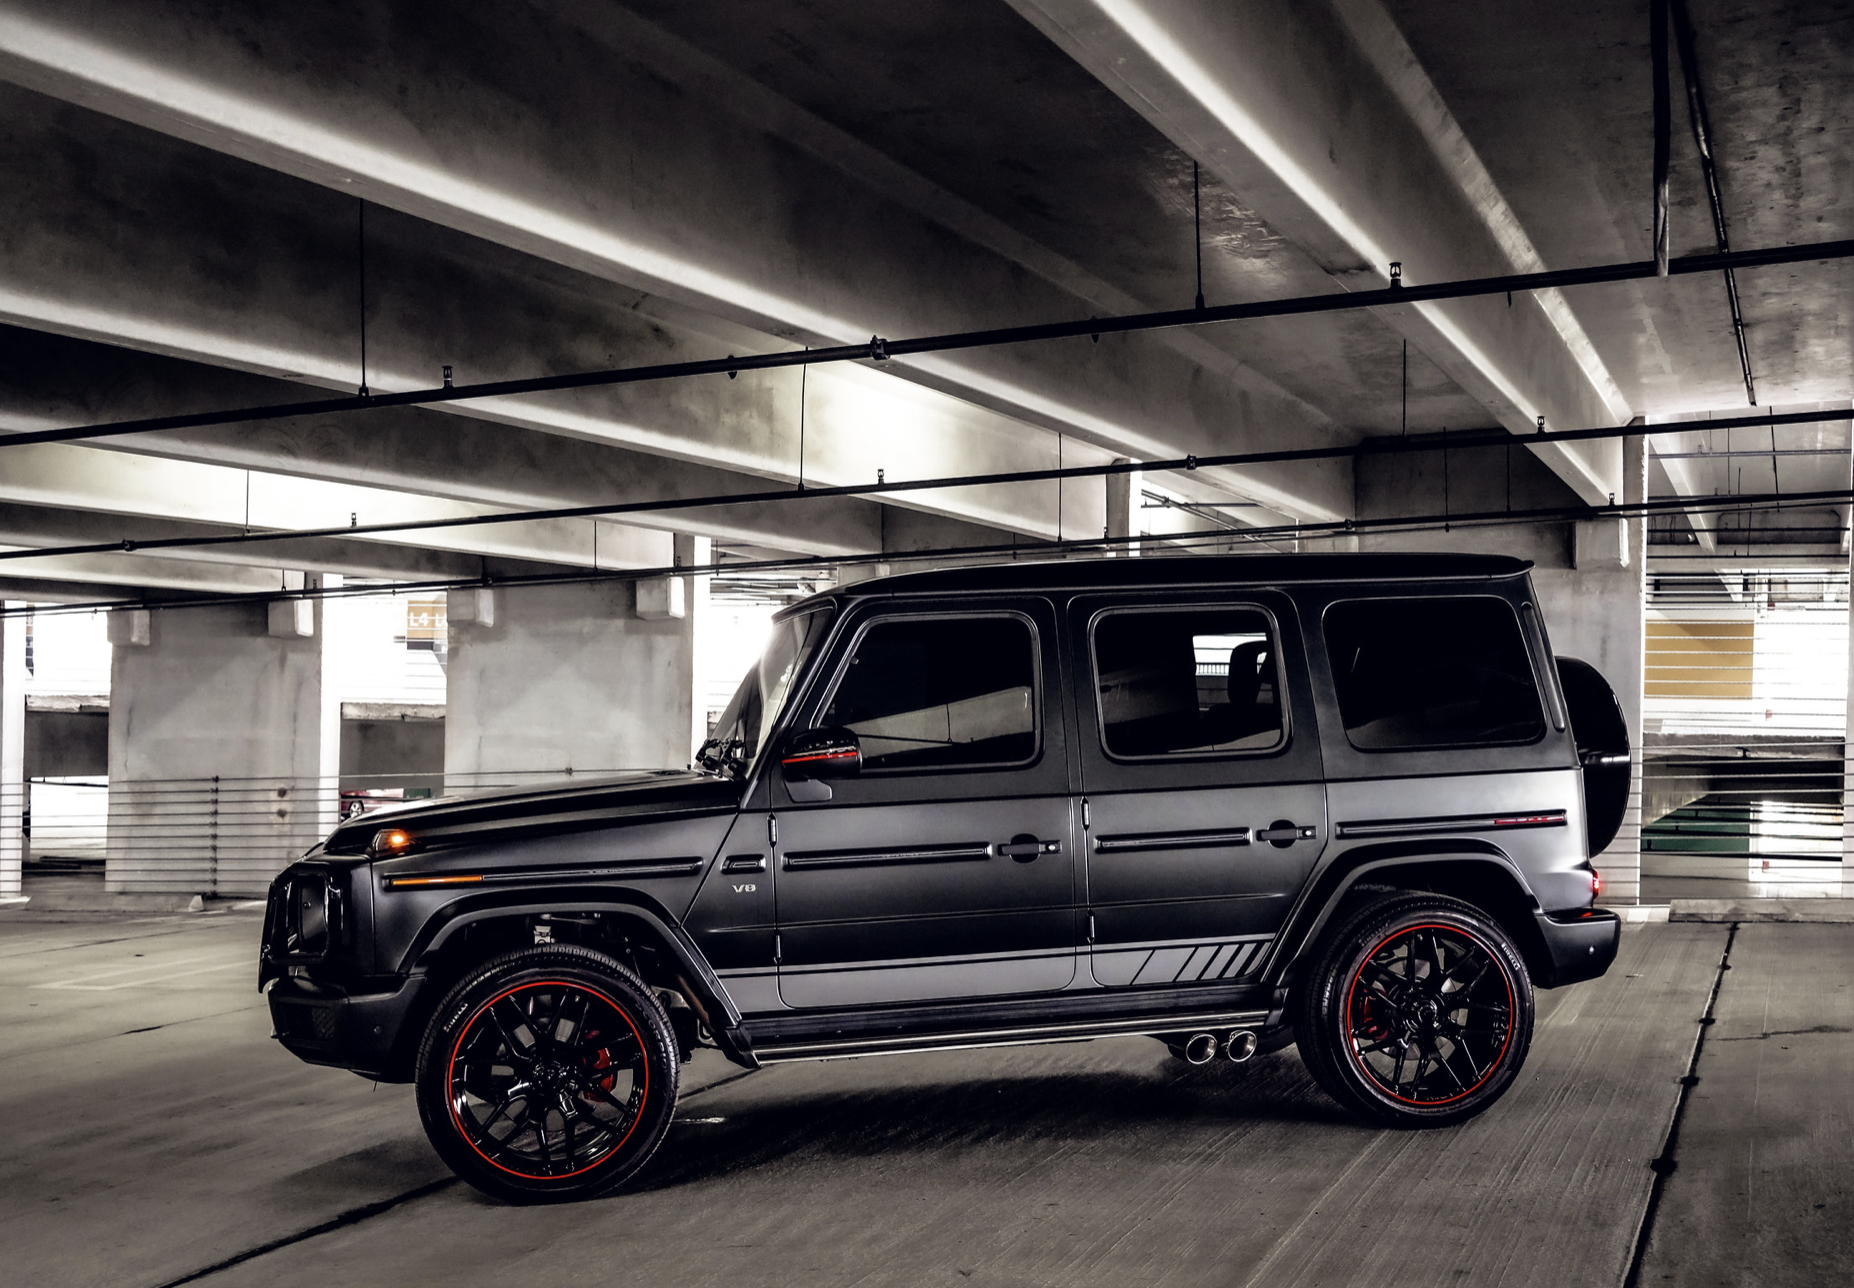 Image #3 of our  Mercedes AMG G63 Matt Black    In Miami Fort Lauderdale Palm Beach South Florida